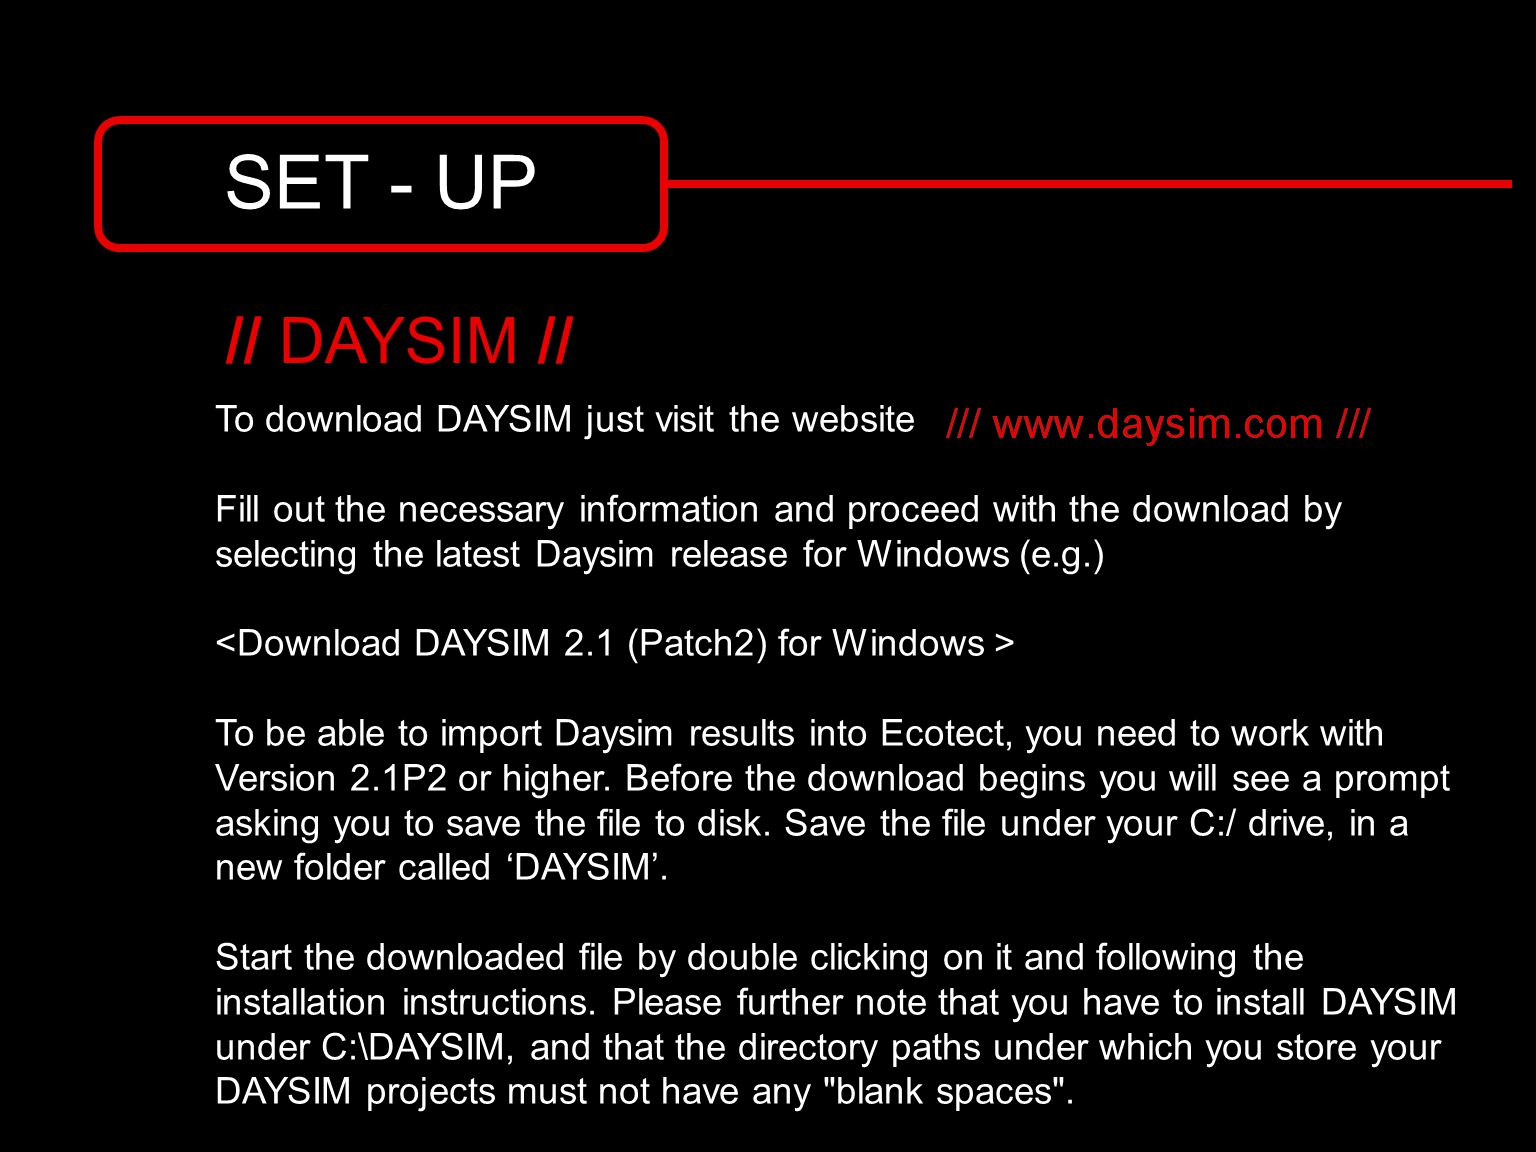 SET - UP To download DAYSIM just visit the website Fill out the necessary information and proceed with the download by selecting the latest Daysim release for Windows (e.g.) To be able to import Daysim results into Ecotect, you need to work with Version 2.1P2 or higher.